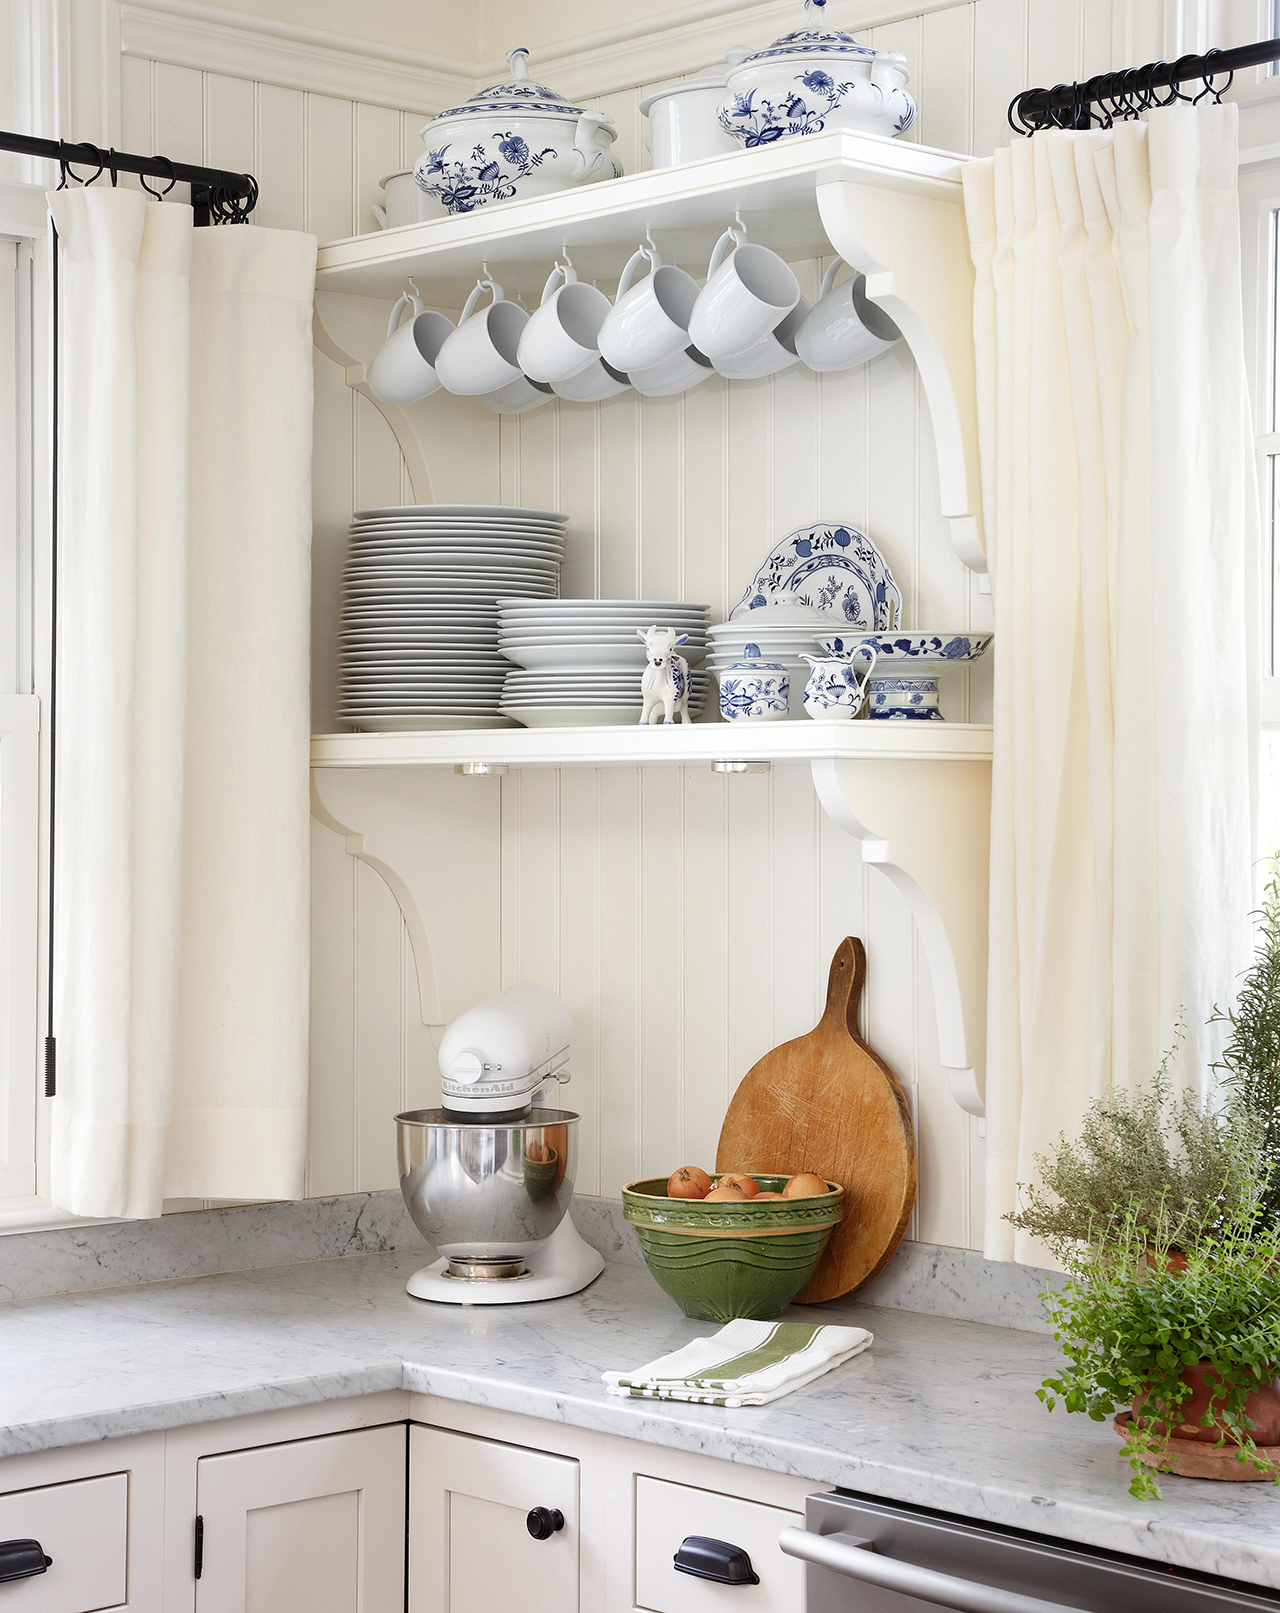 Plate Display Ideas That Turn Dishes Into Decor Better Homes Gardens